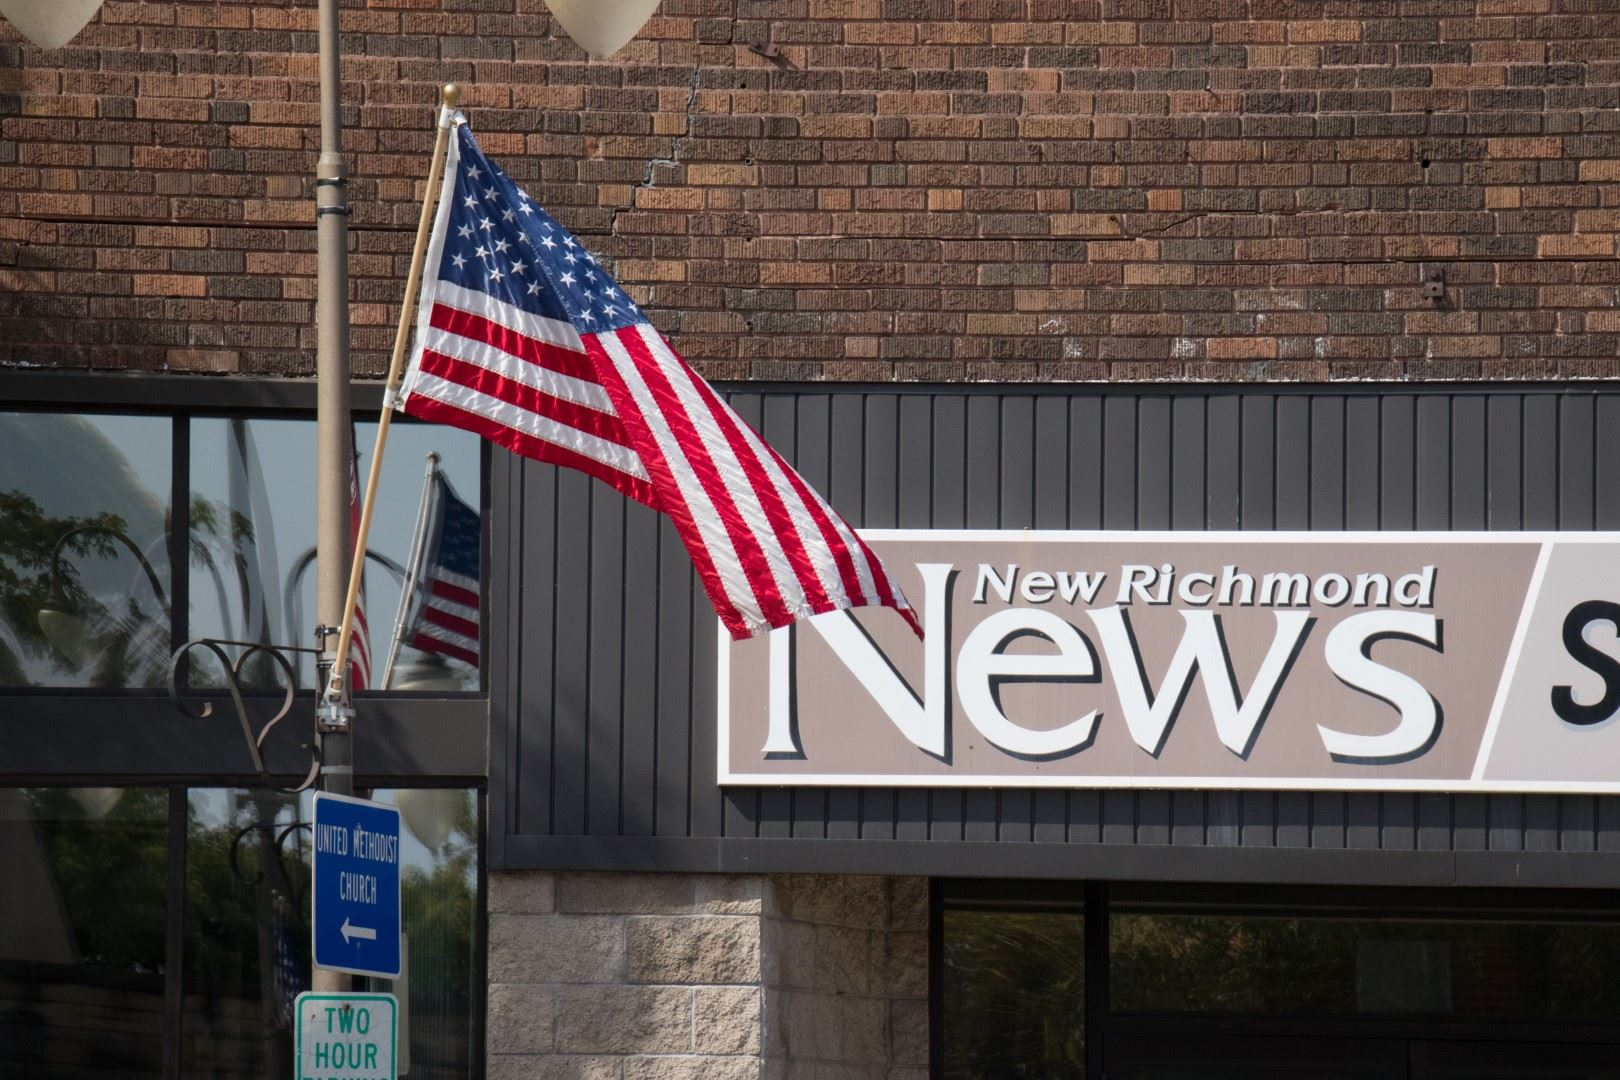 New Richmond News Sign with American Flag